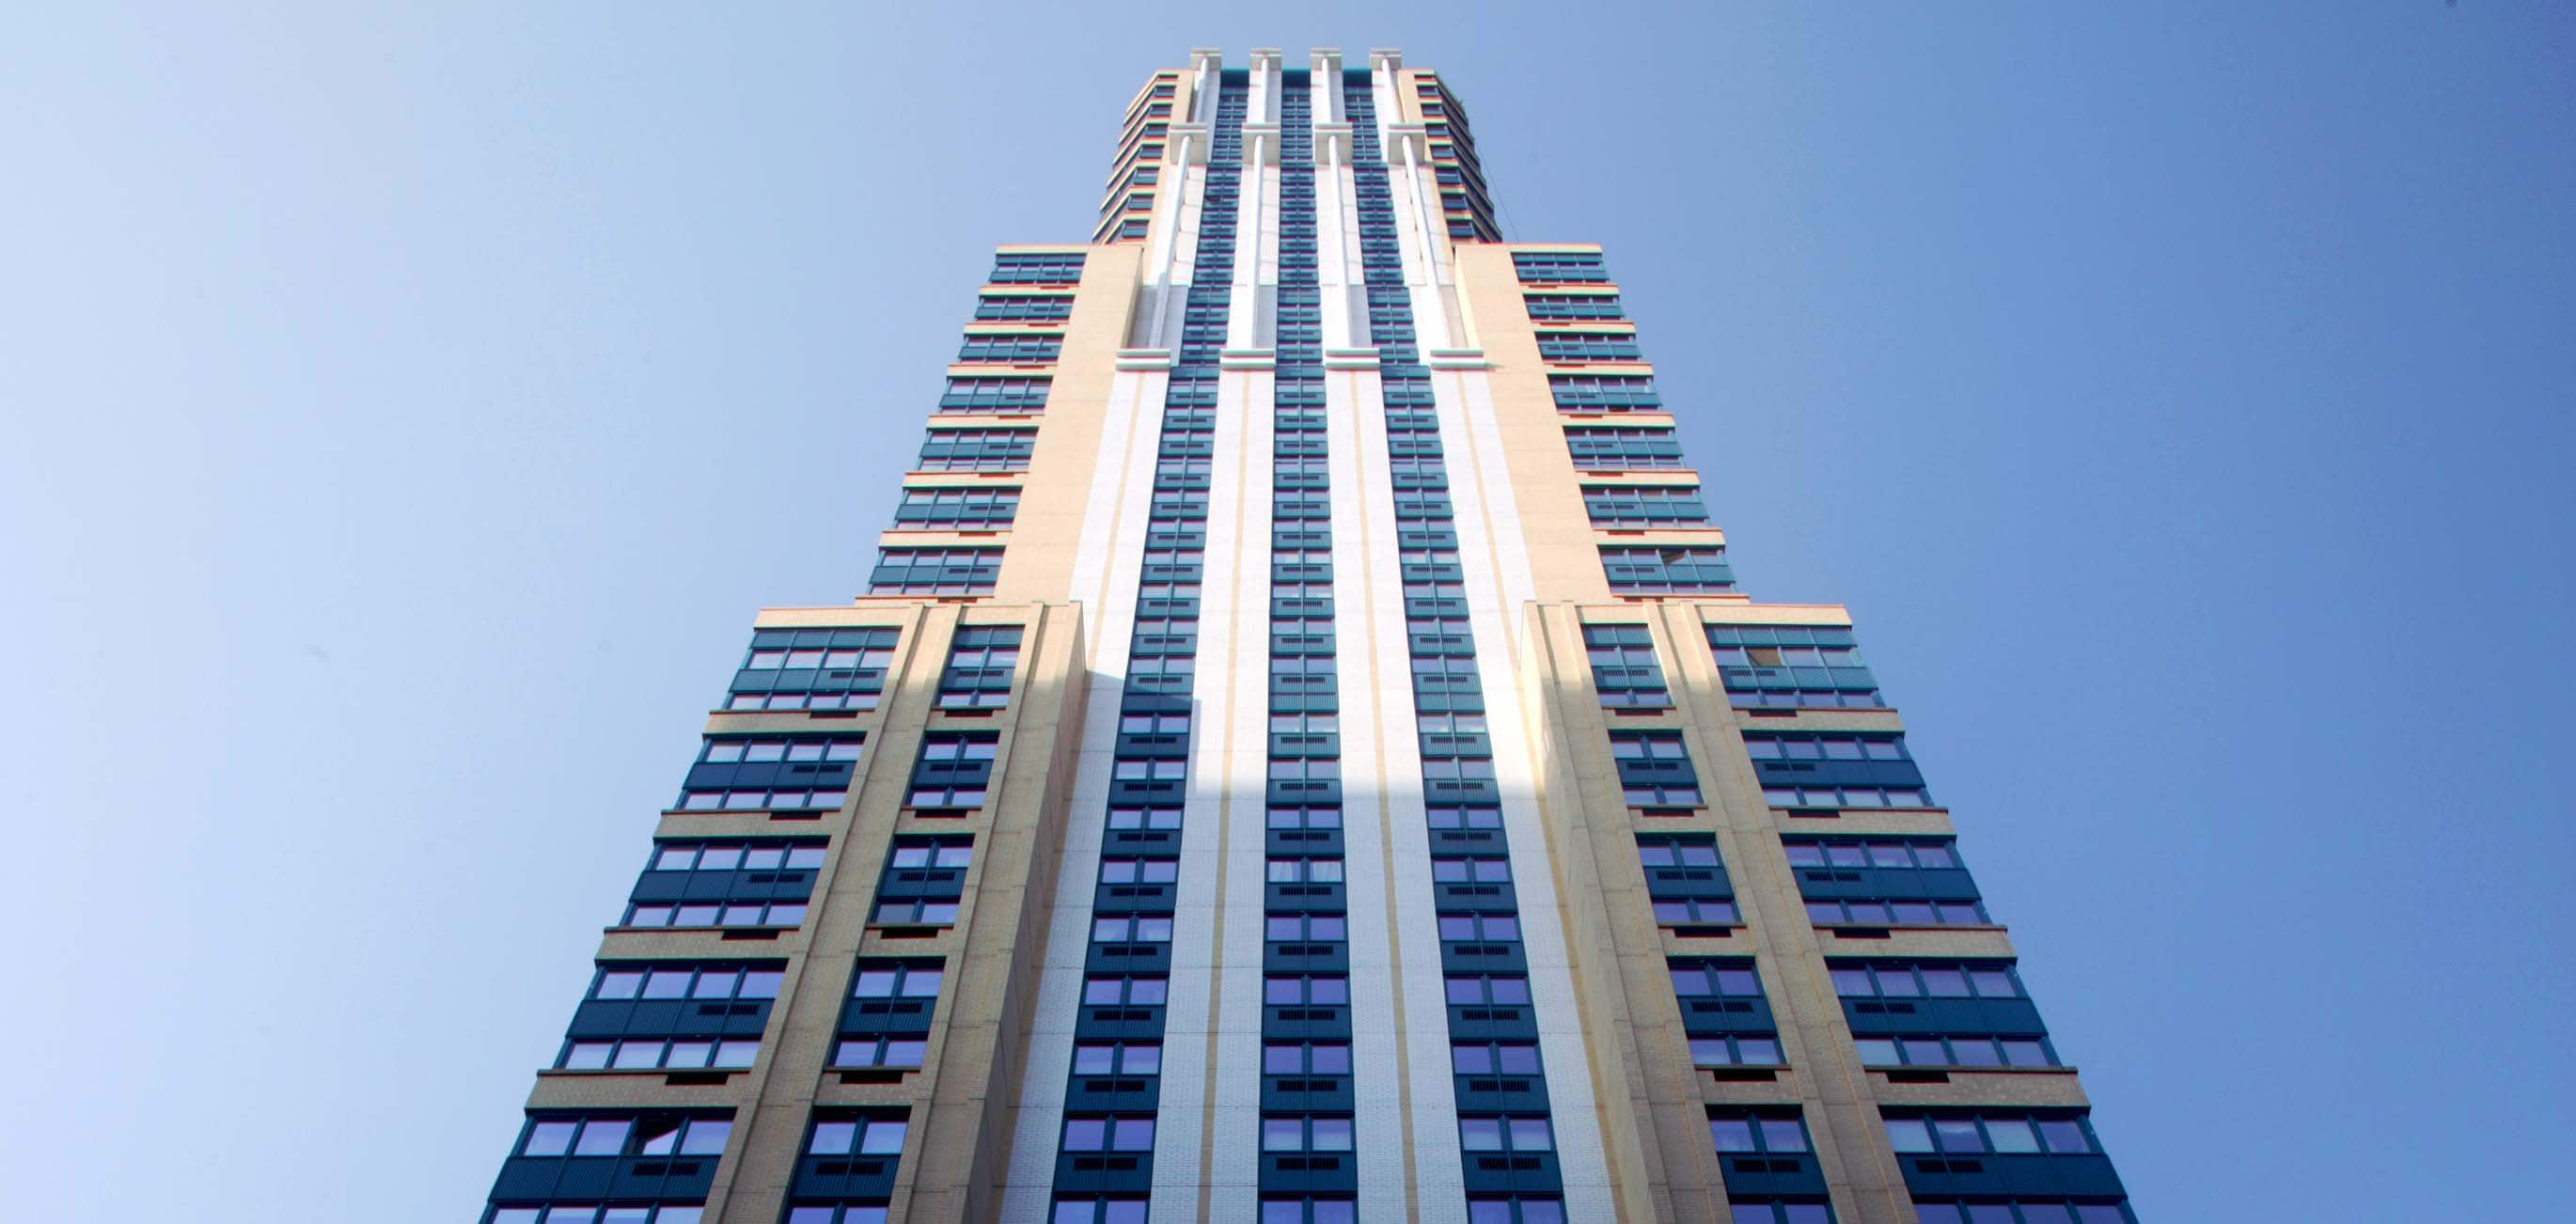 425 Fifth Ave Luxury Residences by Michael Graves